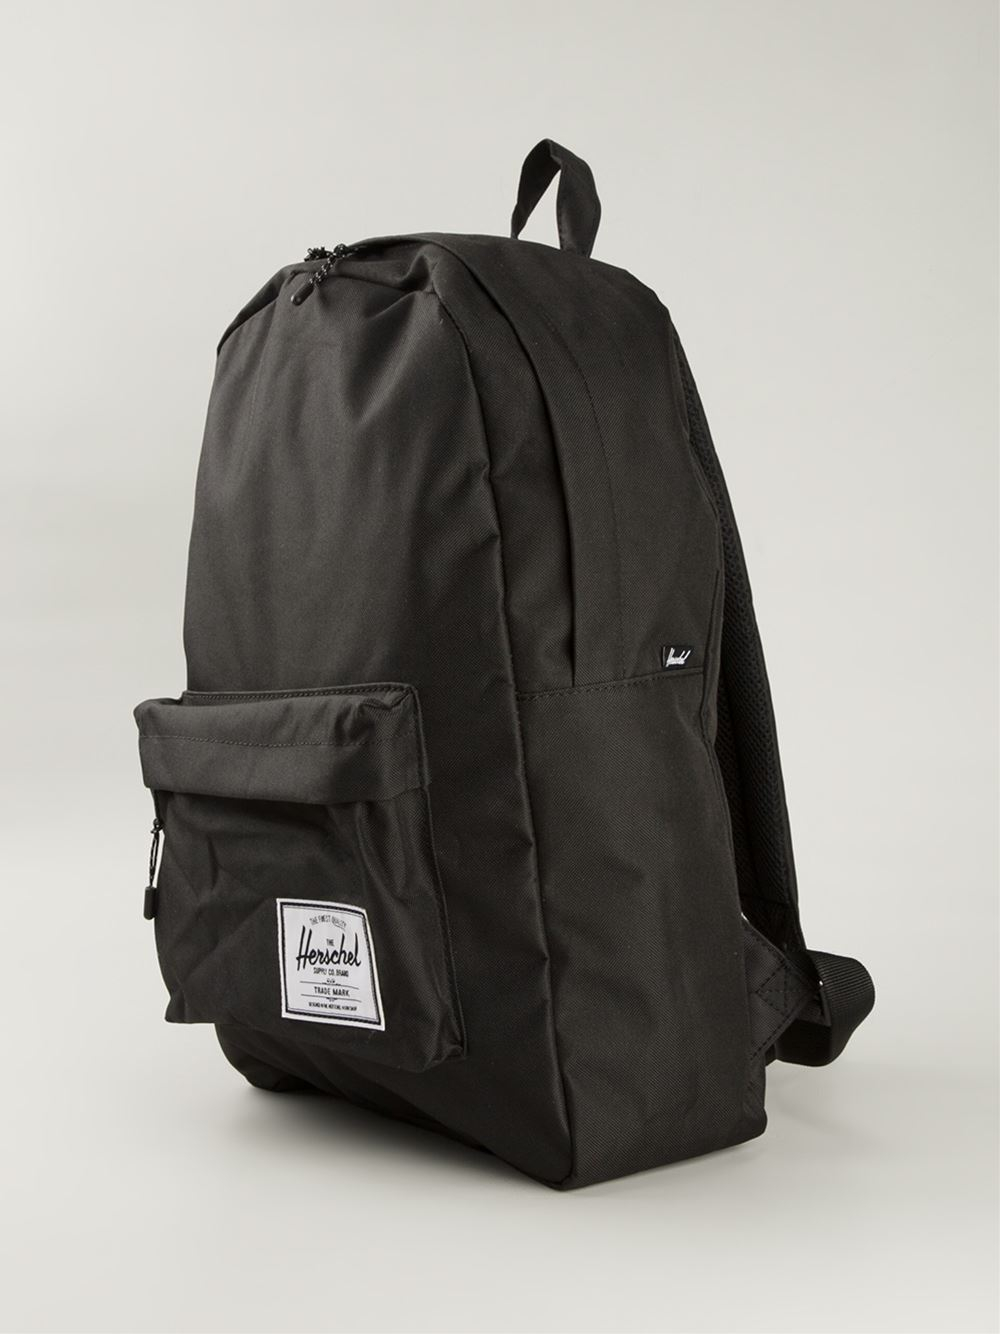 28f15cfcfa1 Herschel Supply Co. Black Classic Backpack for men